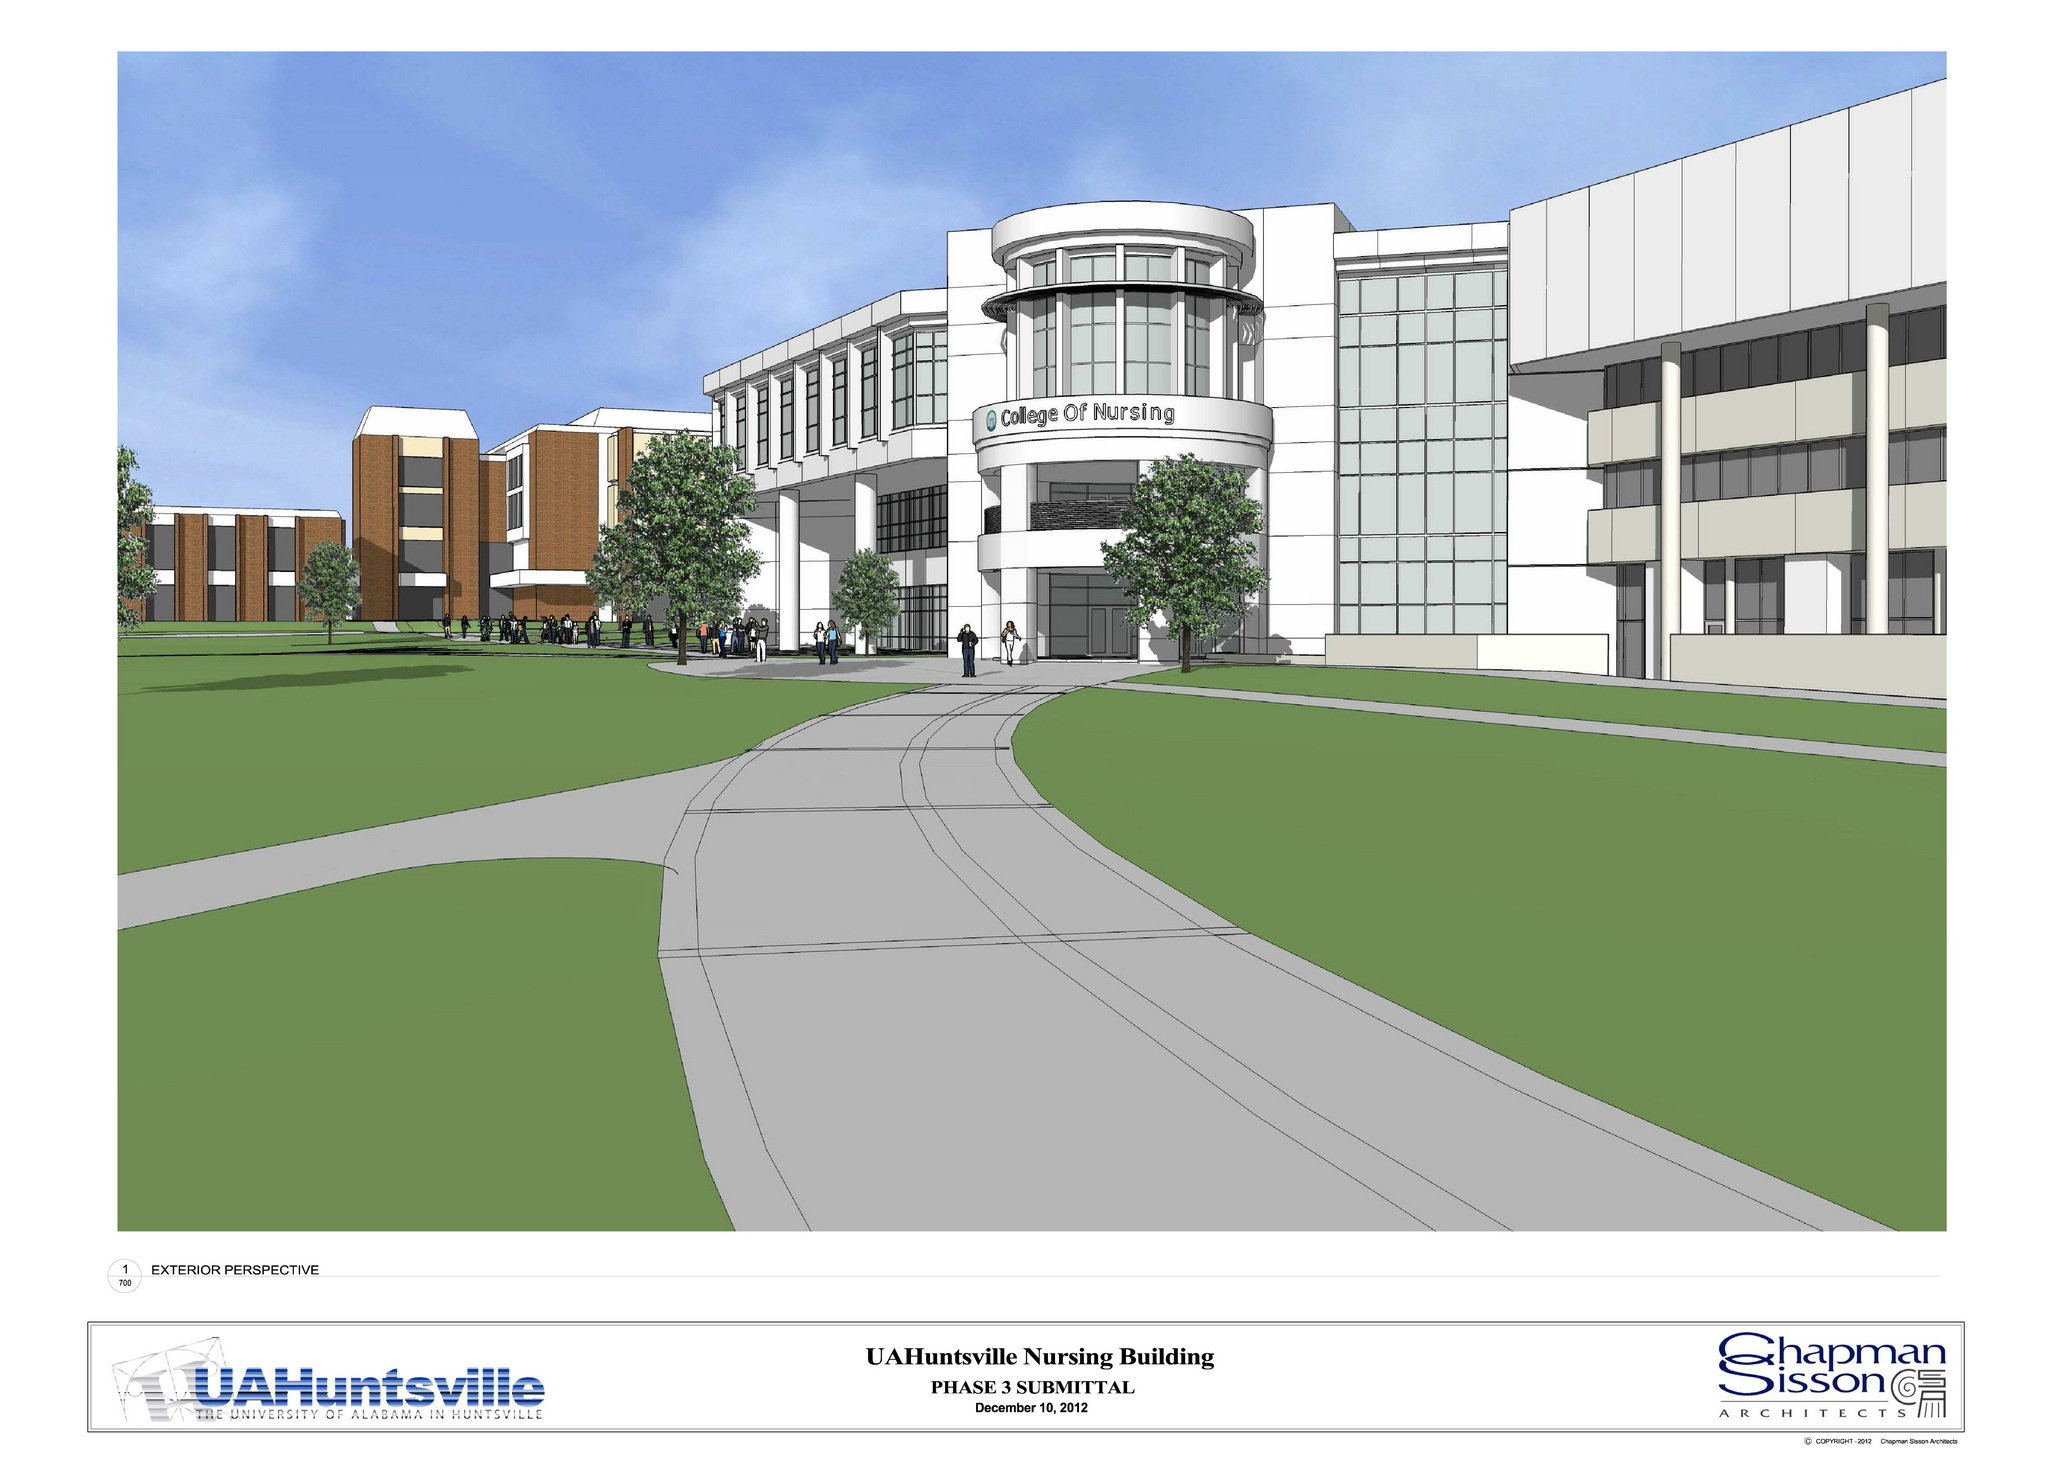 2048x1462 Size Of Uah Nursing College Addition Expands School Releases